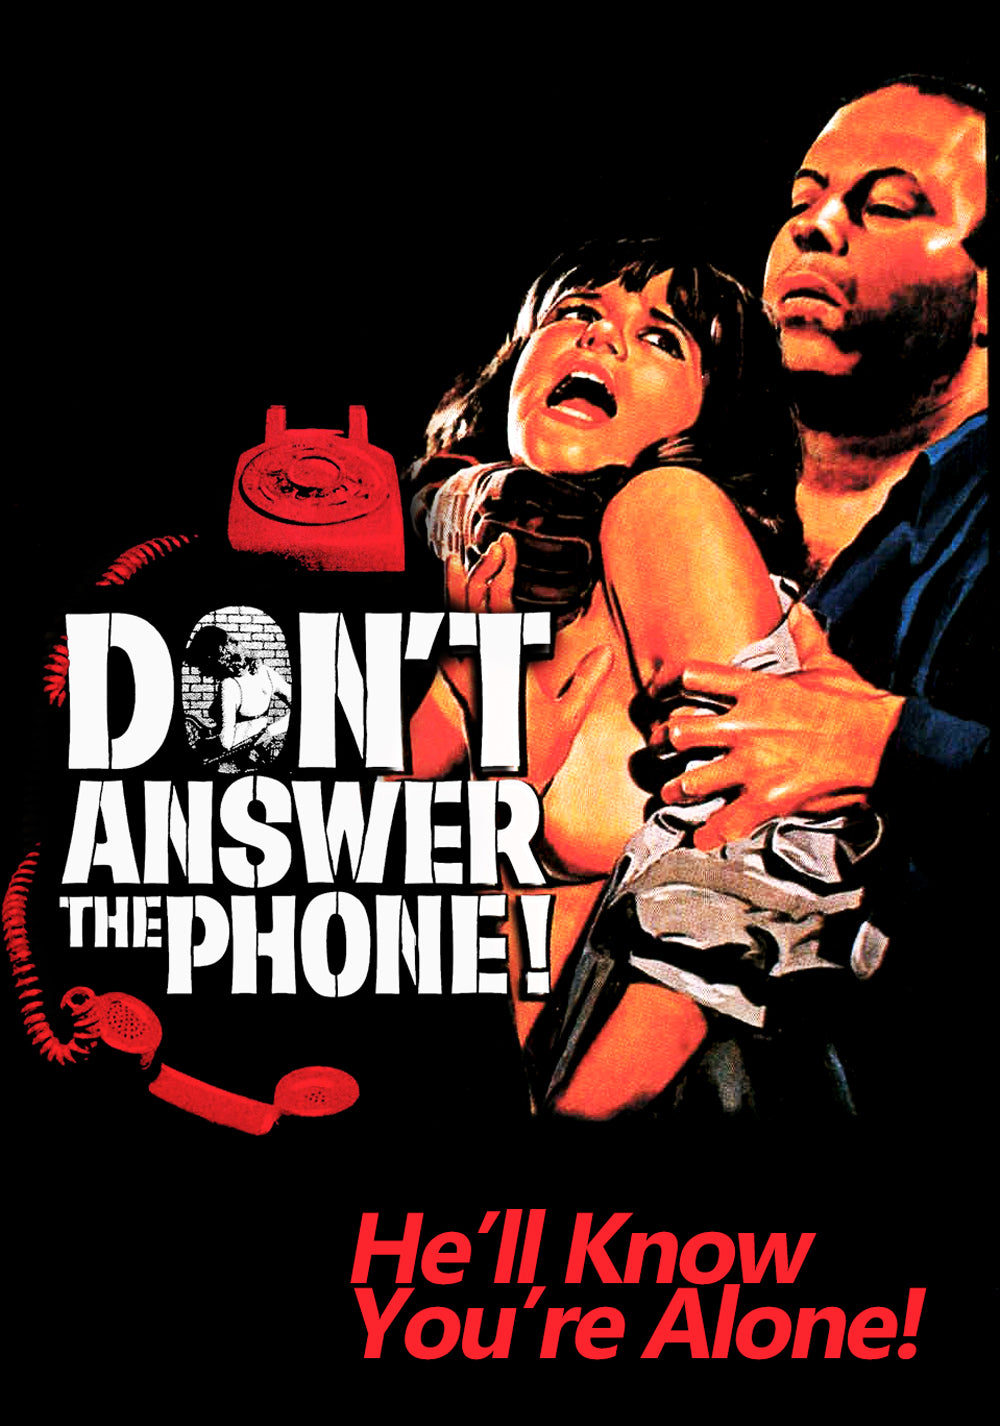 Don't Answer the Phone! Dvd (1980)Rarefliks.com